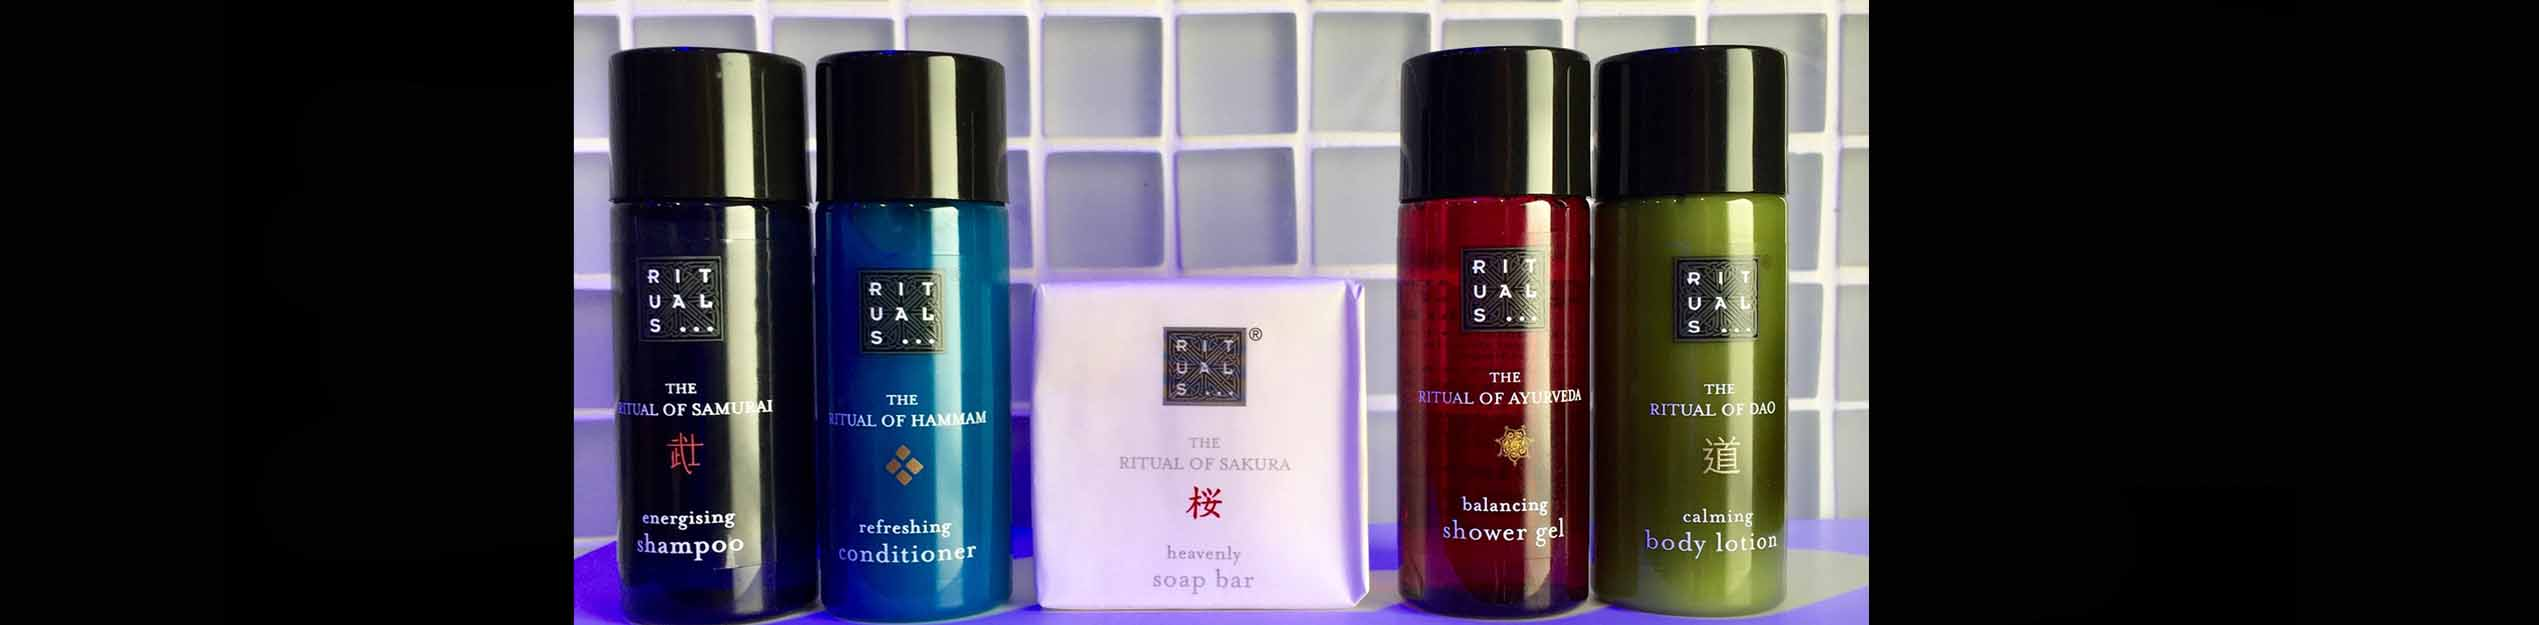 Image RITUALS AMENITIES SUITES